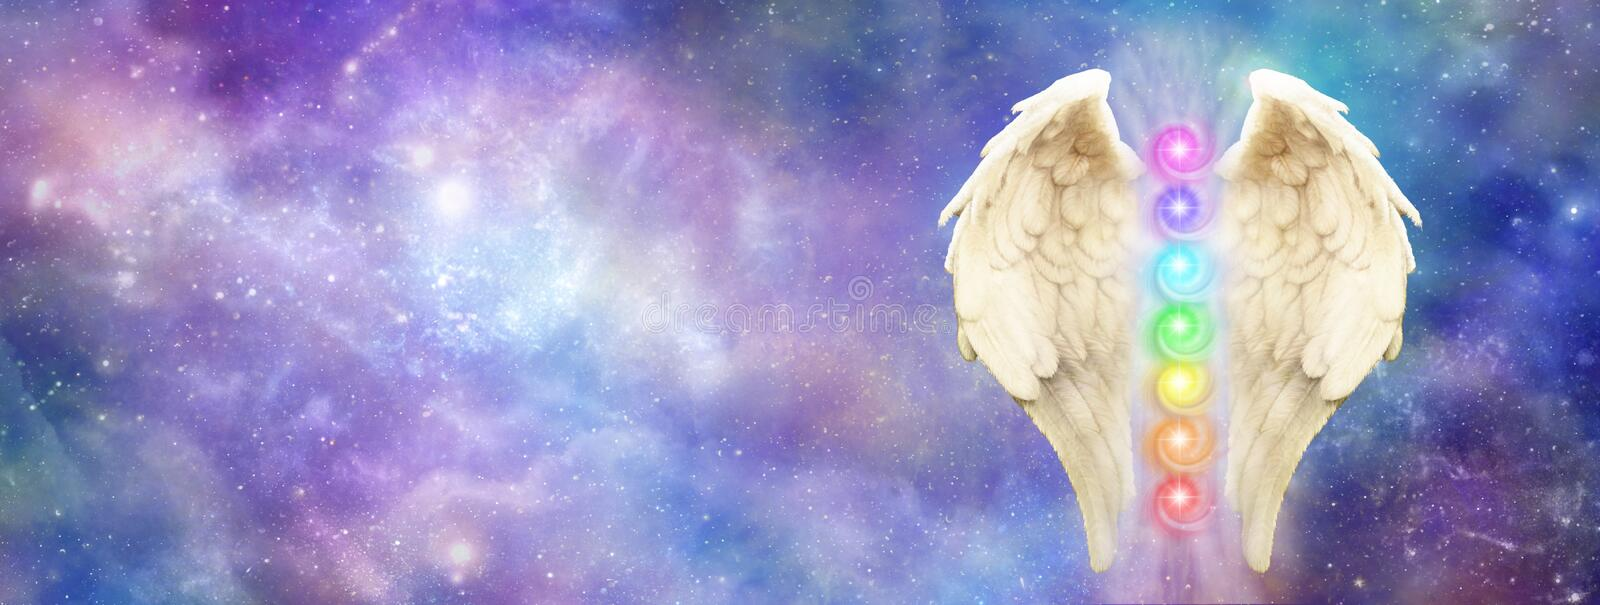 Angelic Cosmic Guardian Website Banner. Bright and beautiful cosmos background with a pair of Angel Wings and seven chakras royalty free stock photo